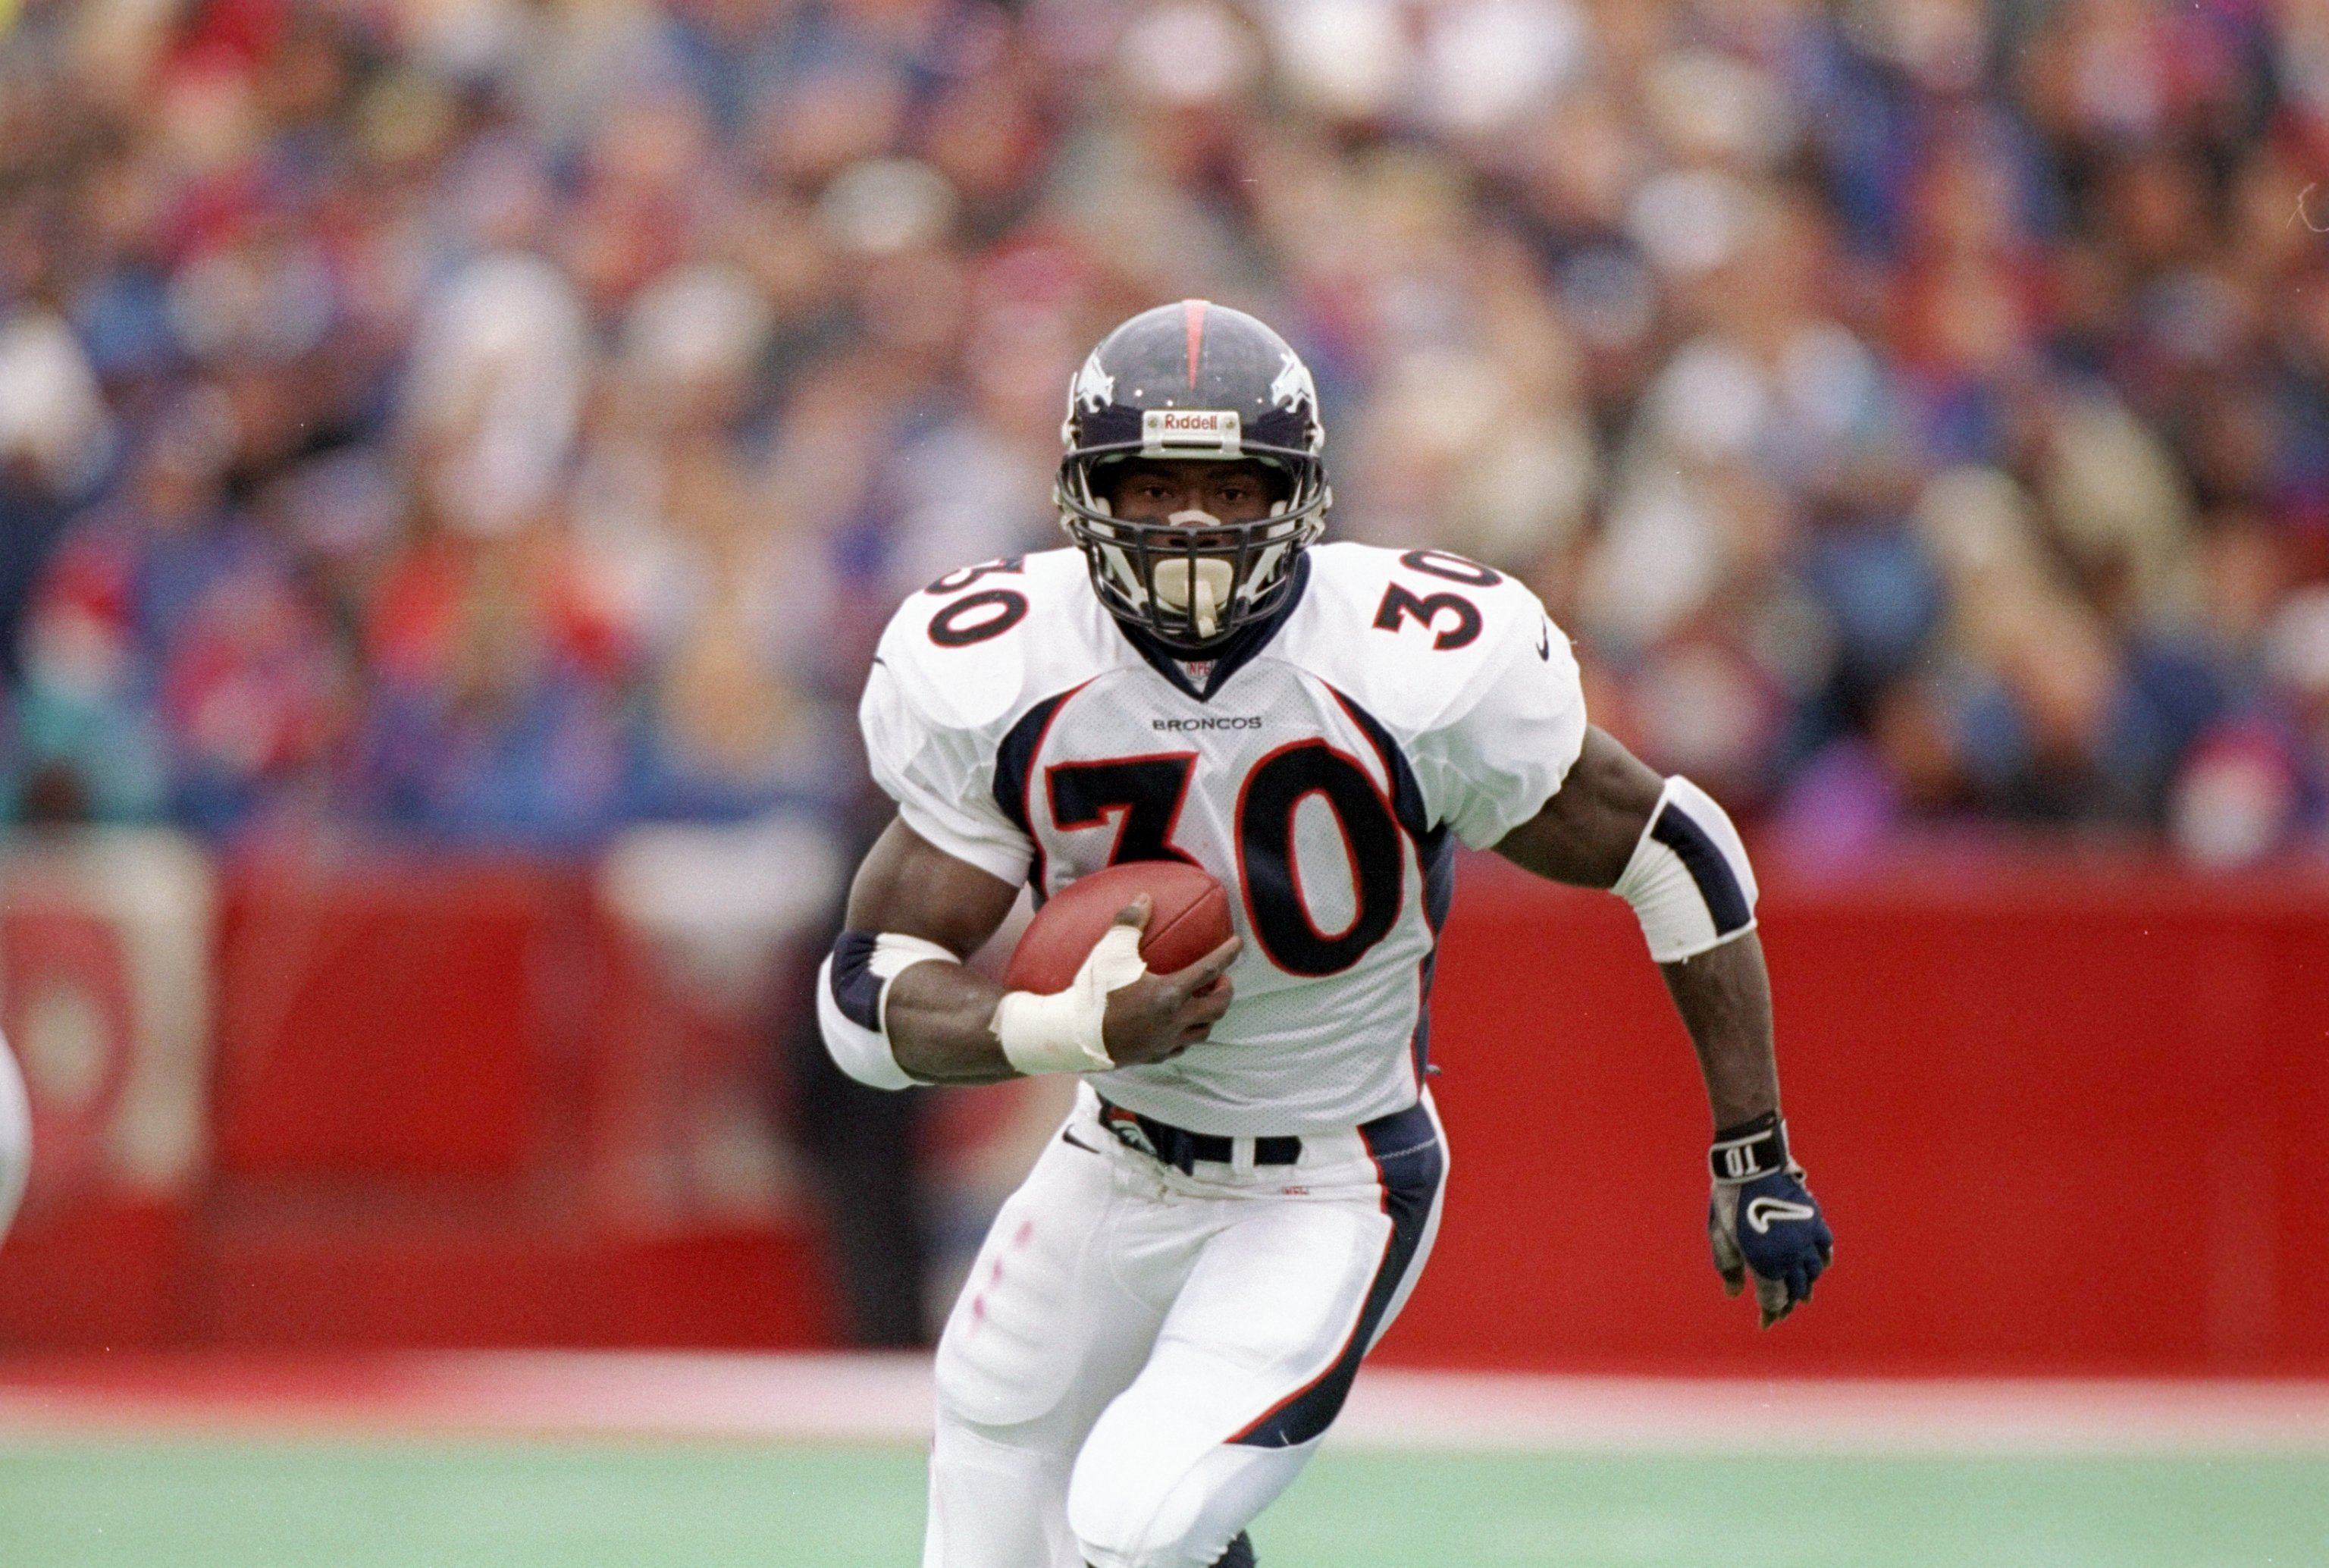 Terrell Davis sprints toward the goal line.